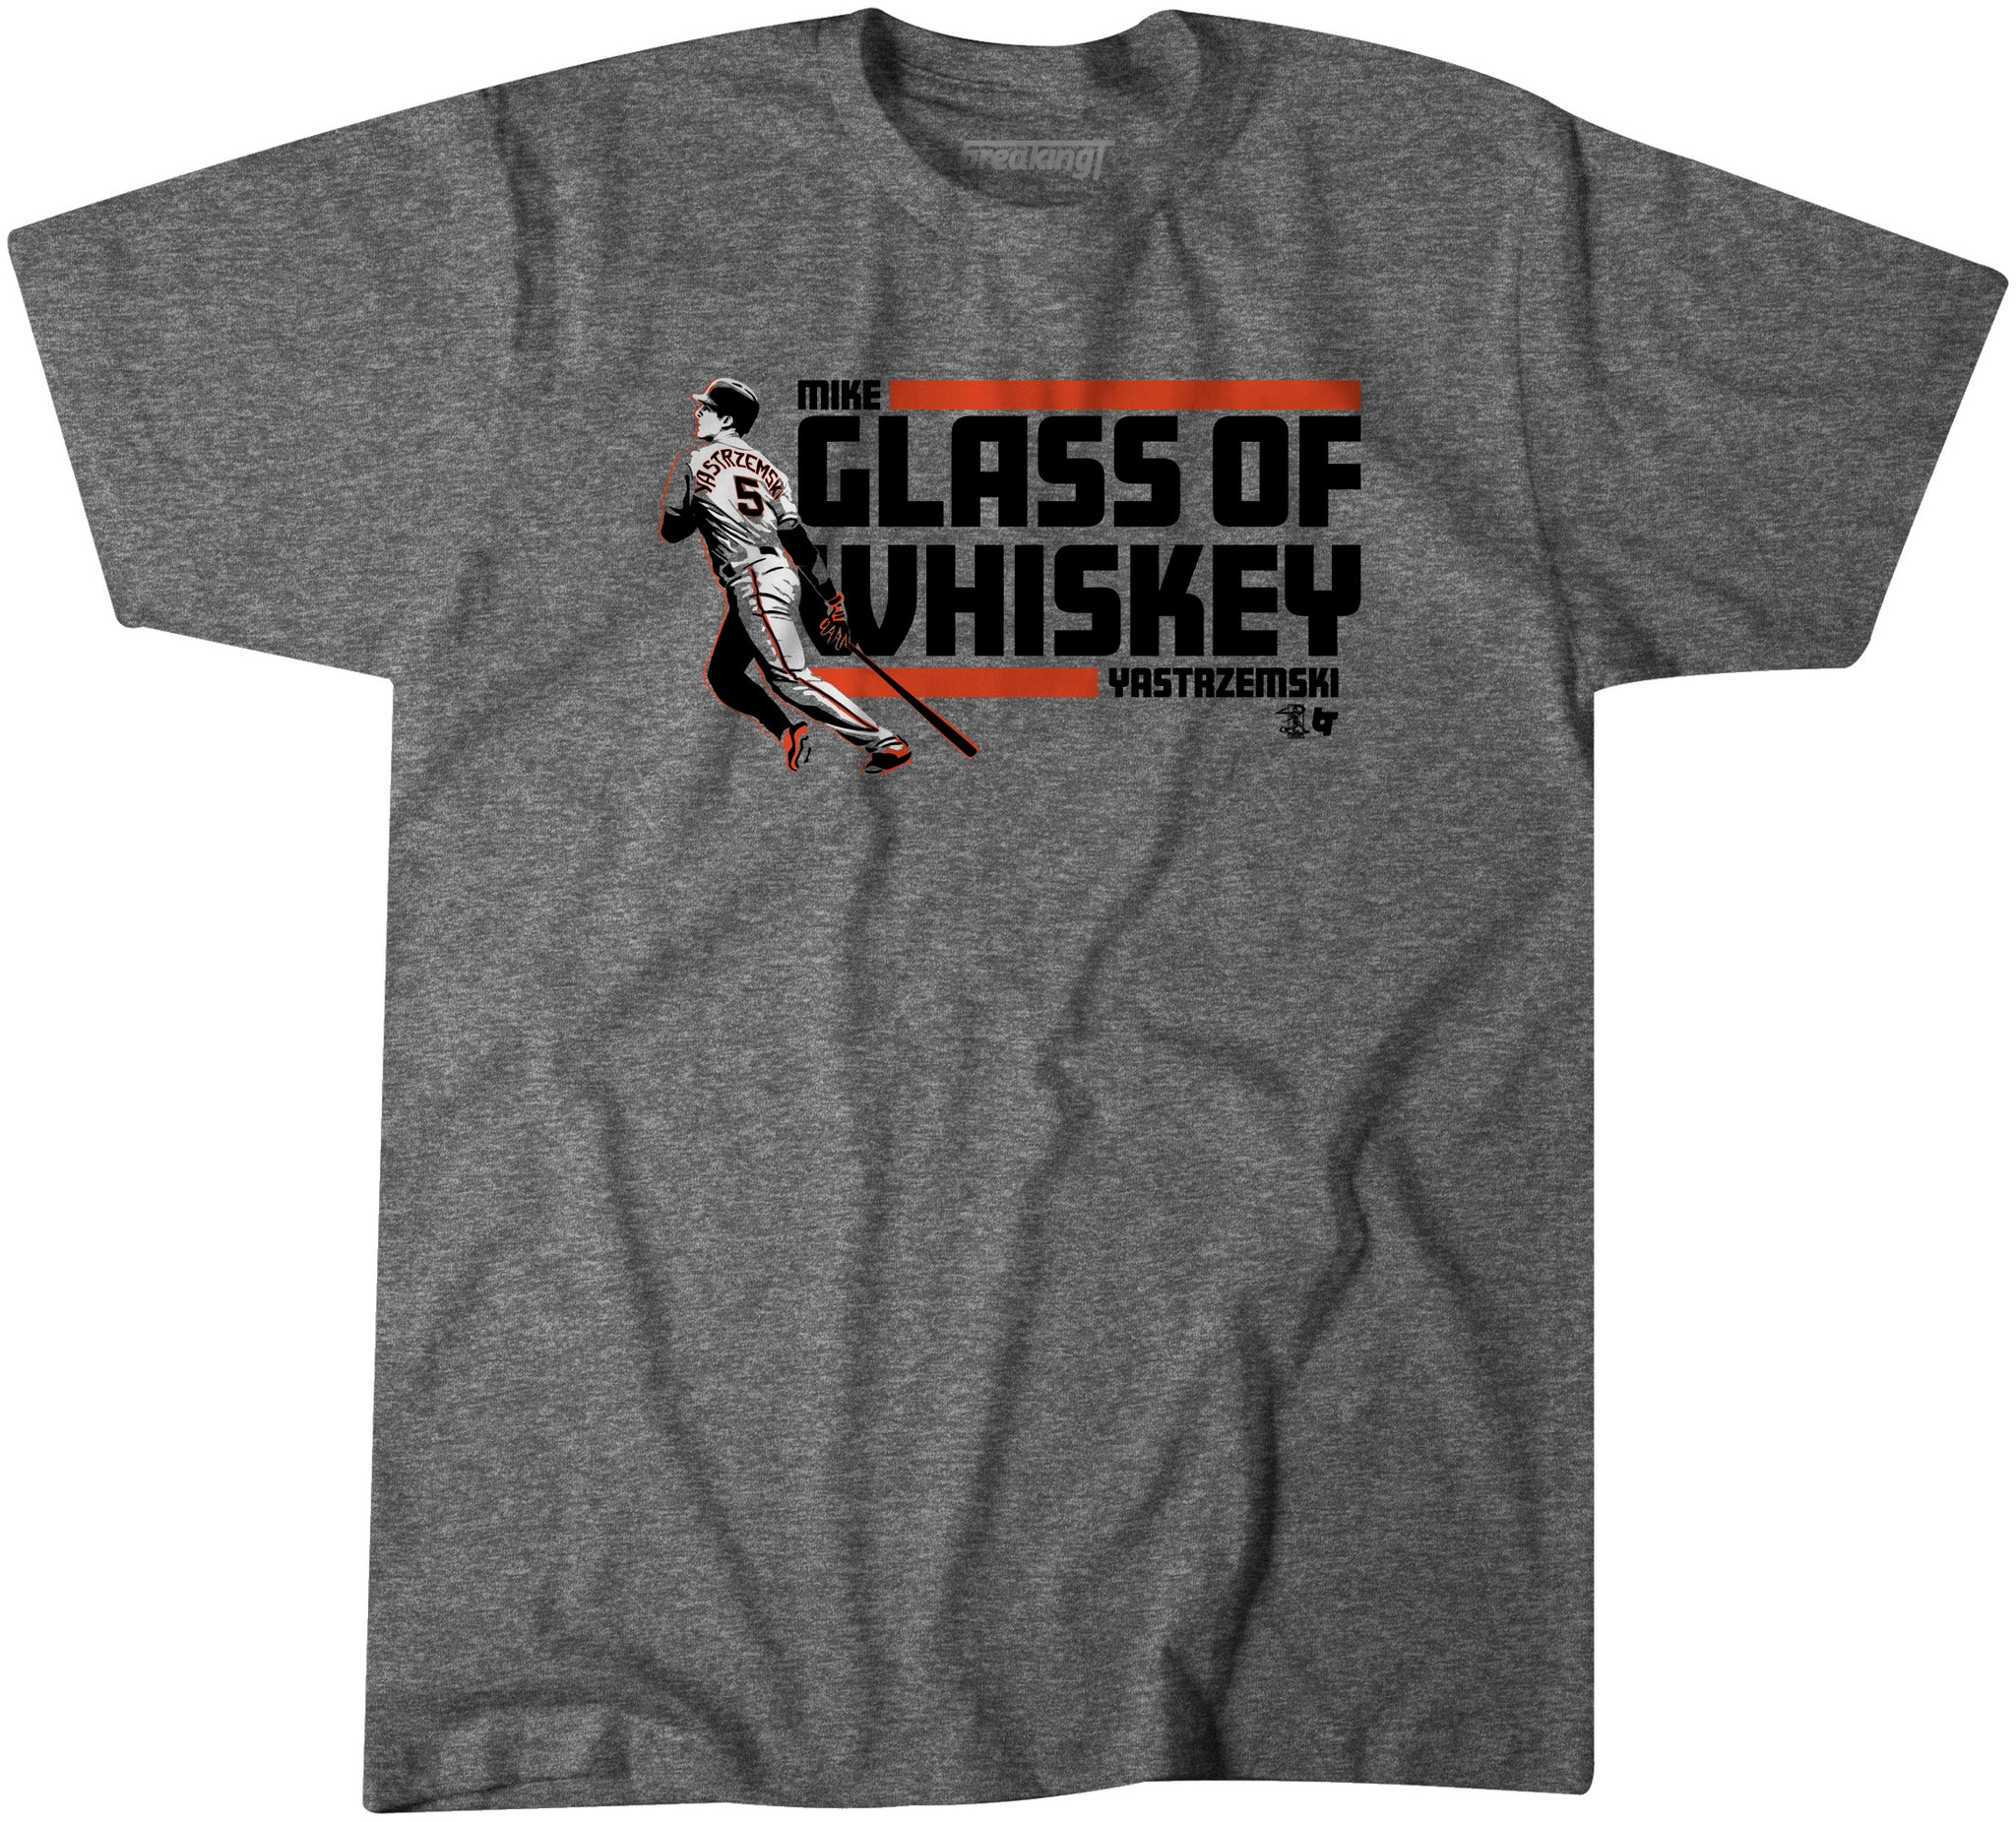 the best attitude 851ec 69621 Glass of Whiskey